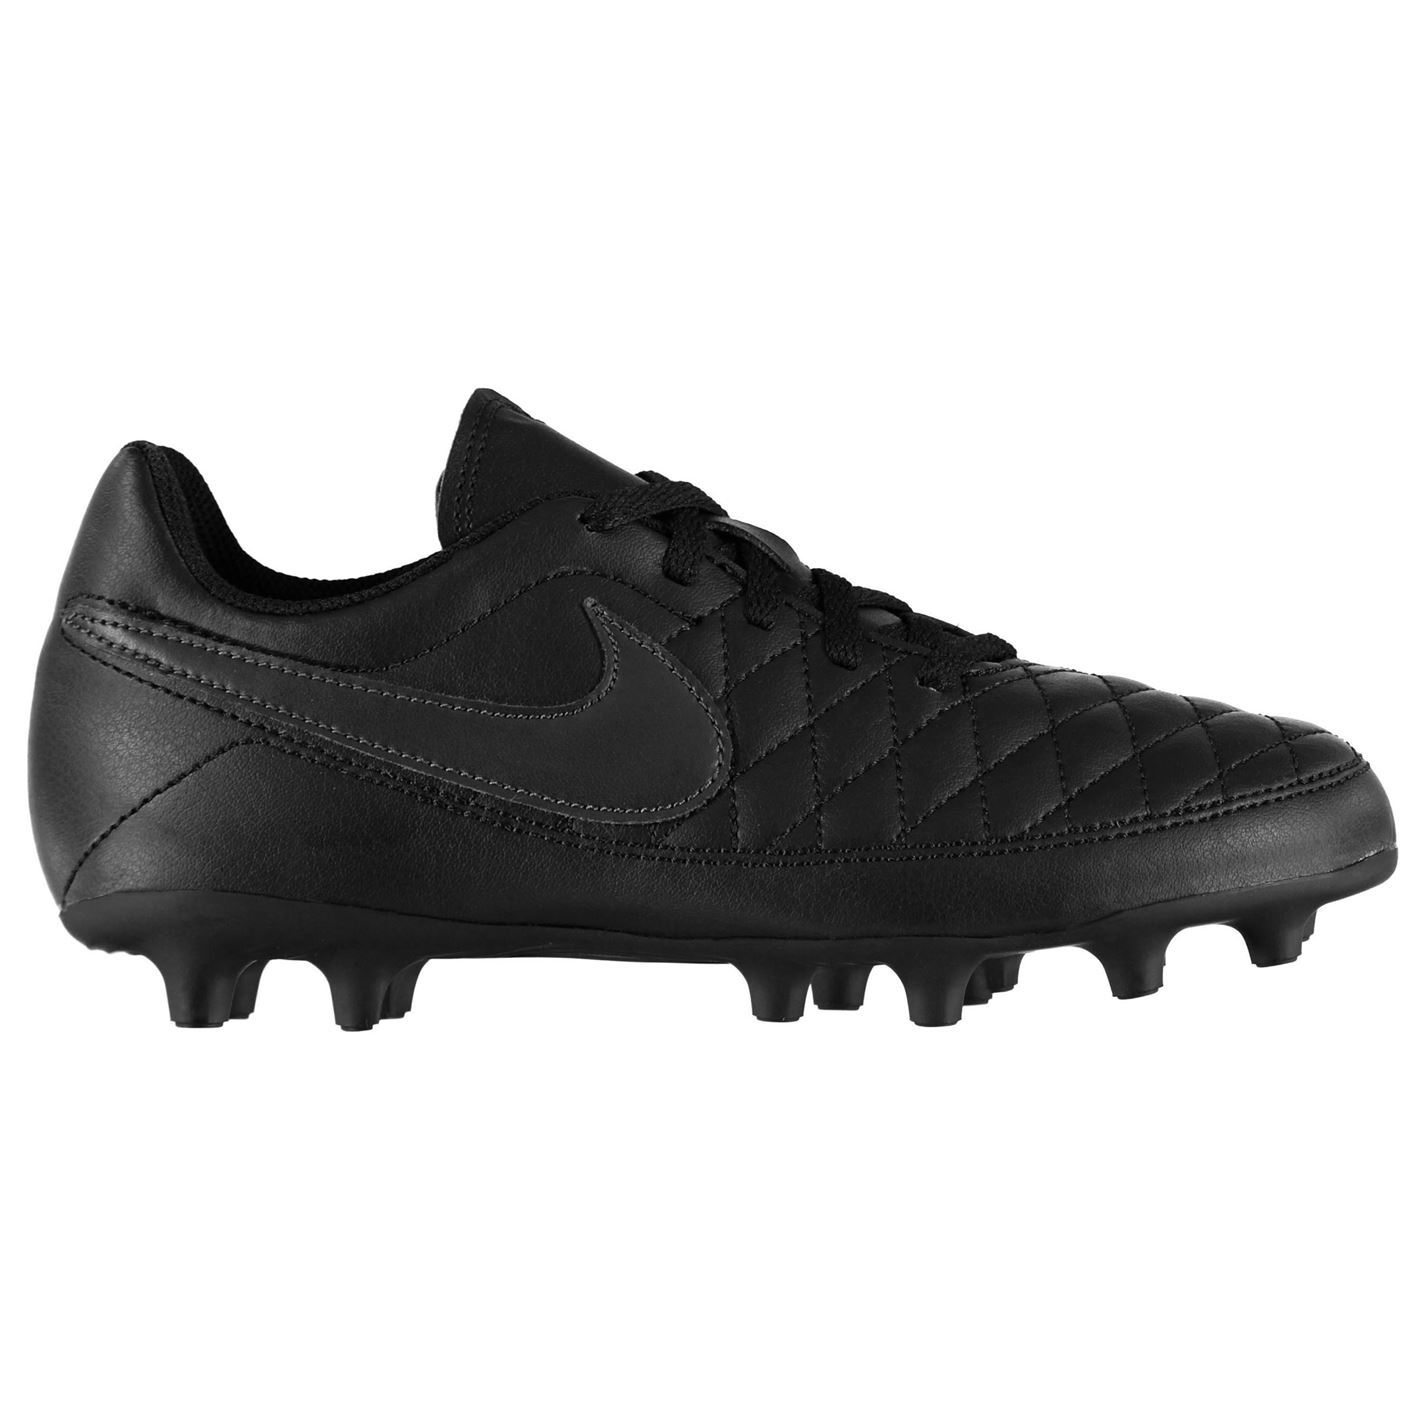 miniature 7 - Nike-majestry-FG-Firm-Ground-Chaussures-De-Football-Enfants-Football-Chaussures-Crampons